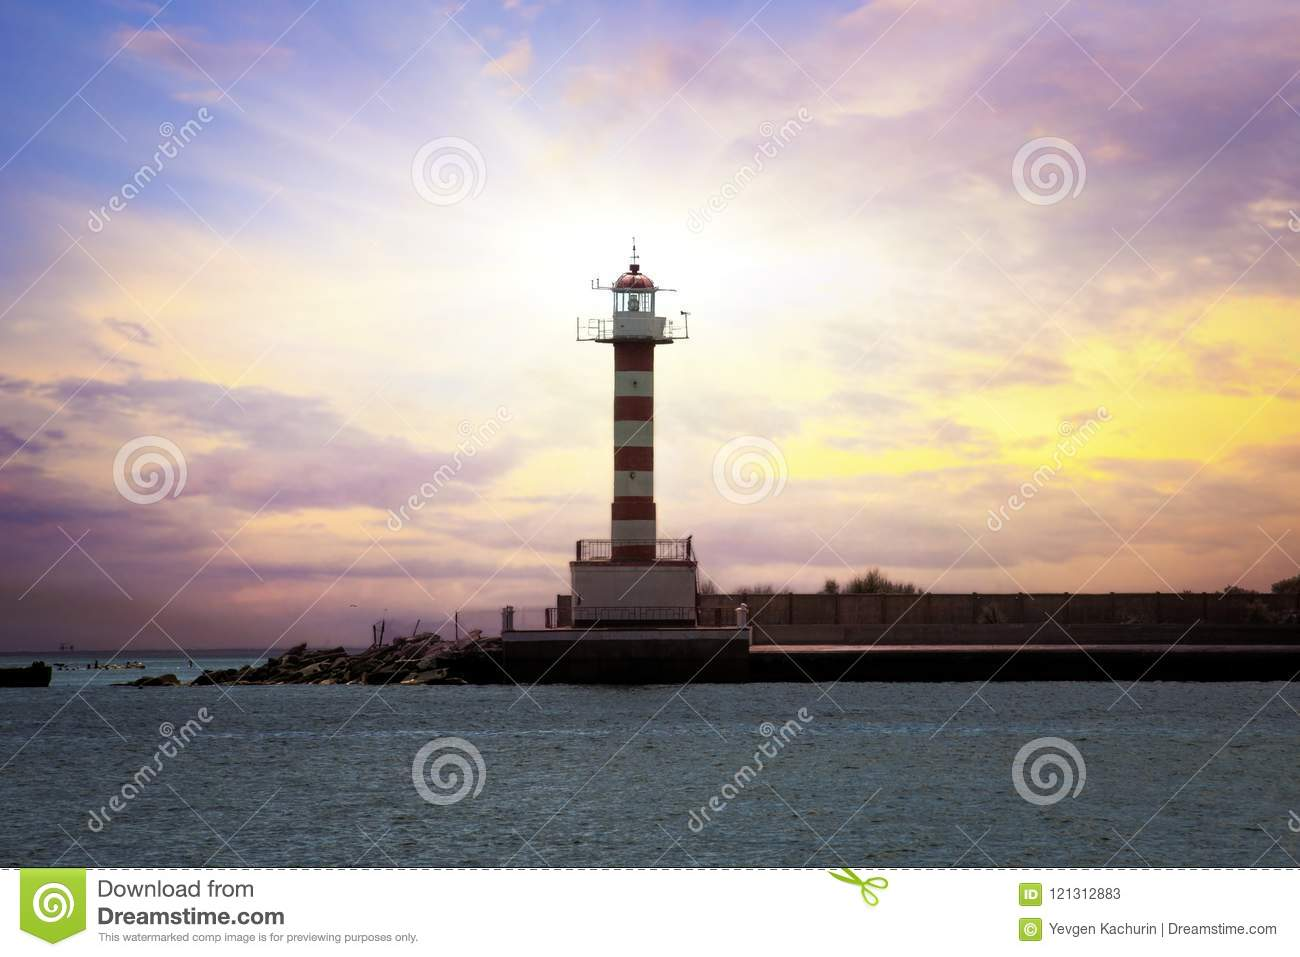 Lighthouse Background A Lighthouse In The Background Stock Image Image Of Background